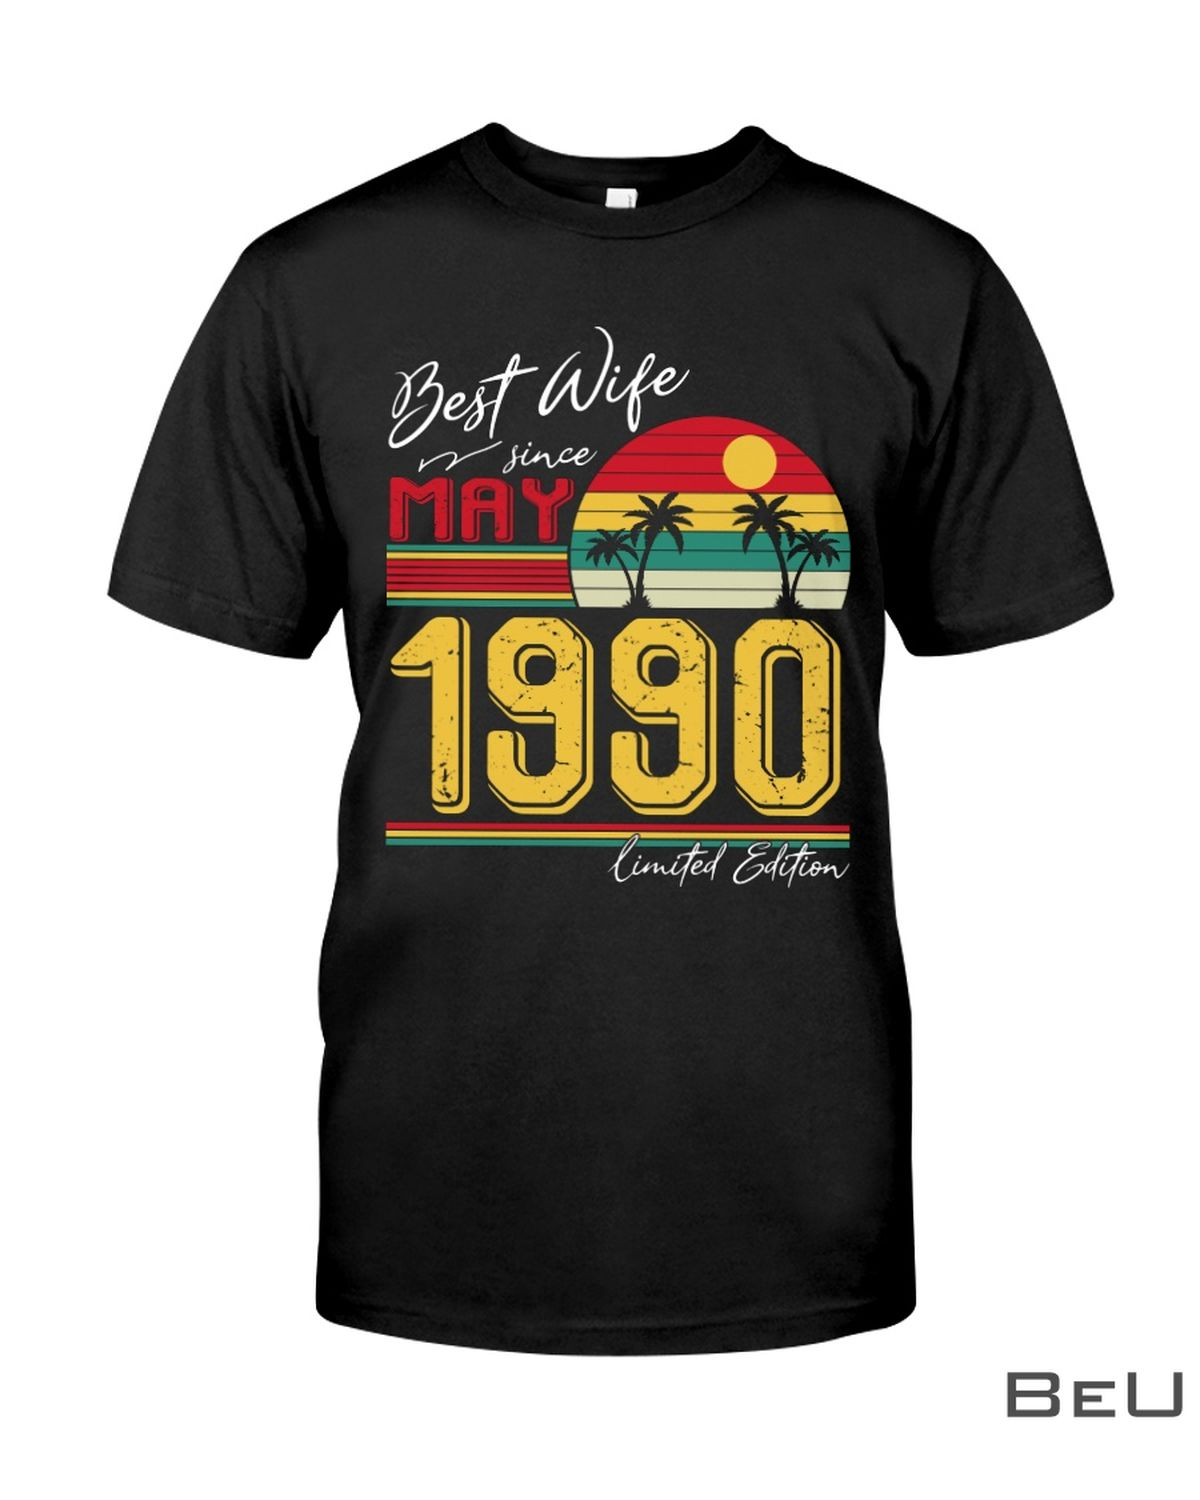 Best Wife Since May 1990 Shirt, hoodie, tank top